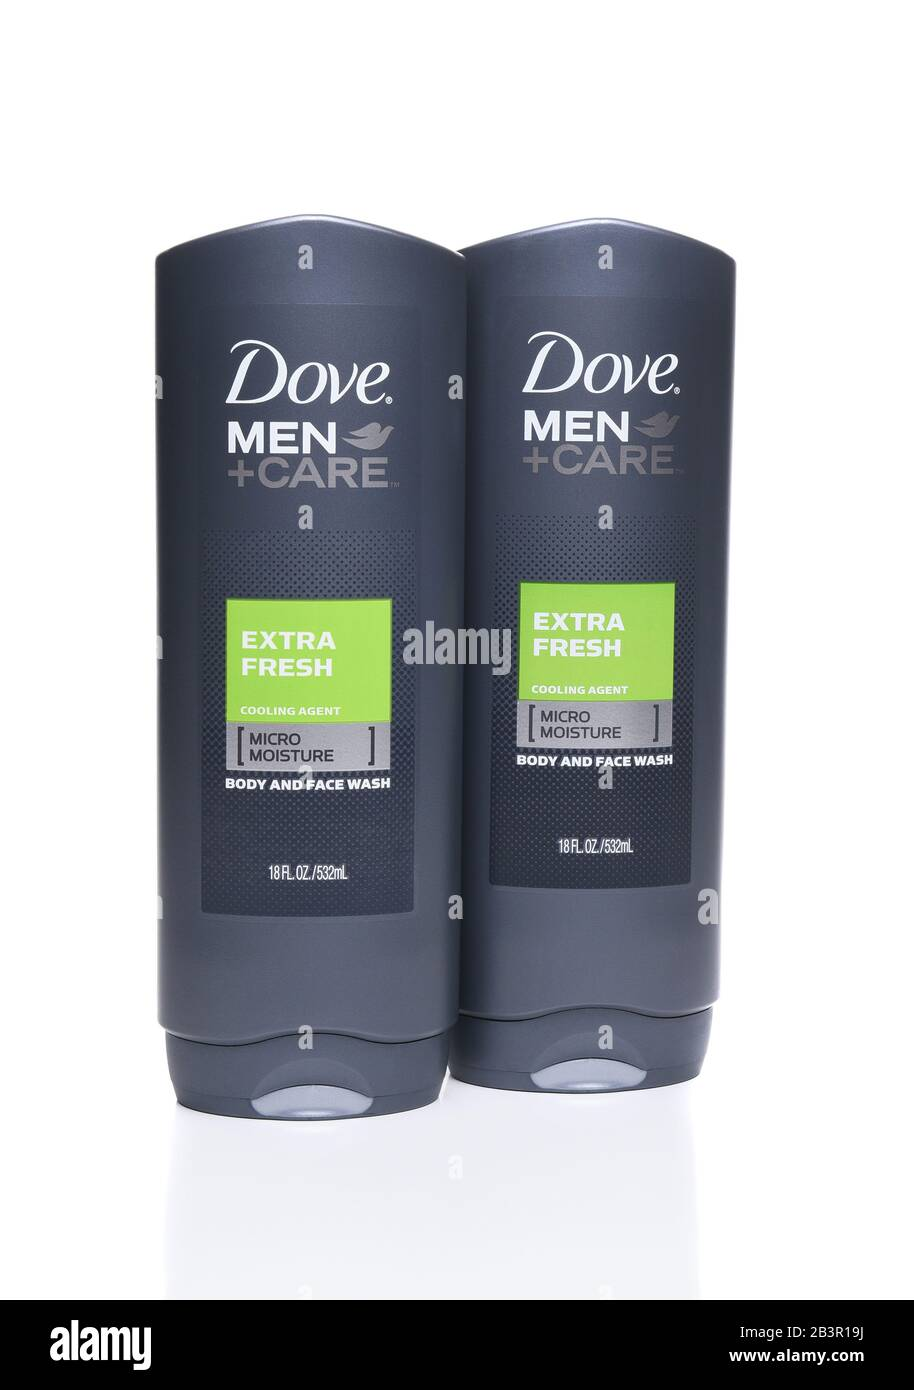 Irvine Ca September 22 2017 Dove Men Care Extra Fresh Body And Face Wash Dove Is A Personal Care Brand Owned By Unilever Stock Photo Alamy